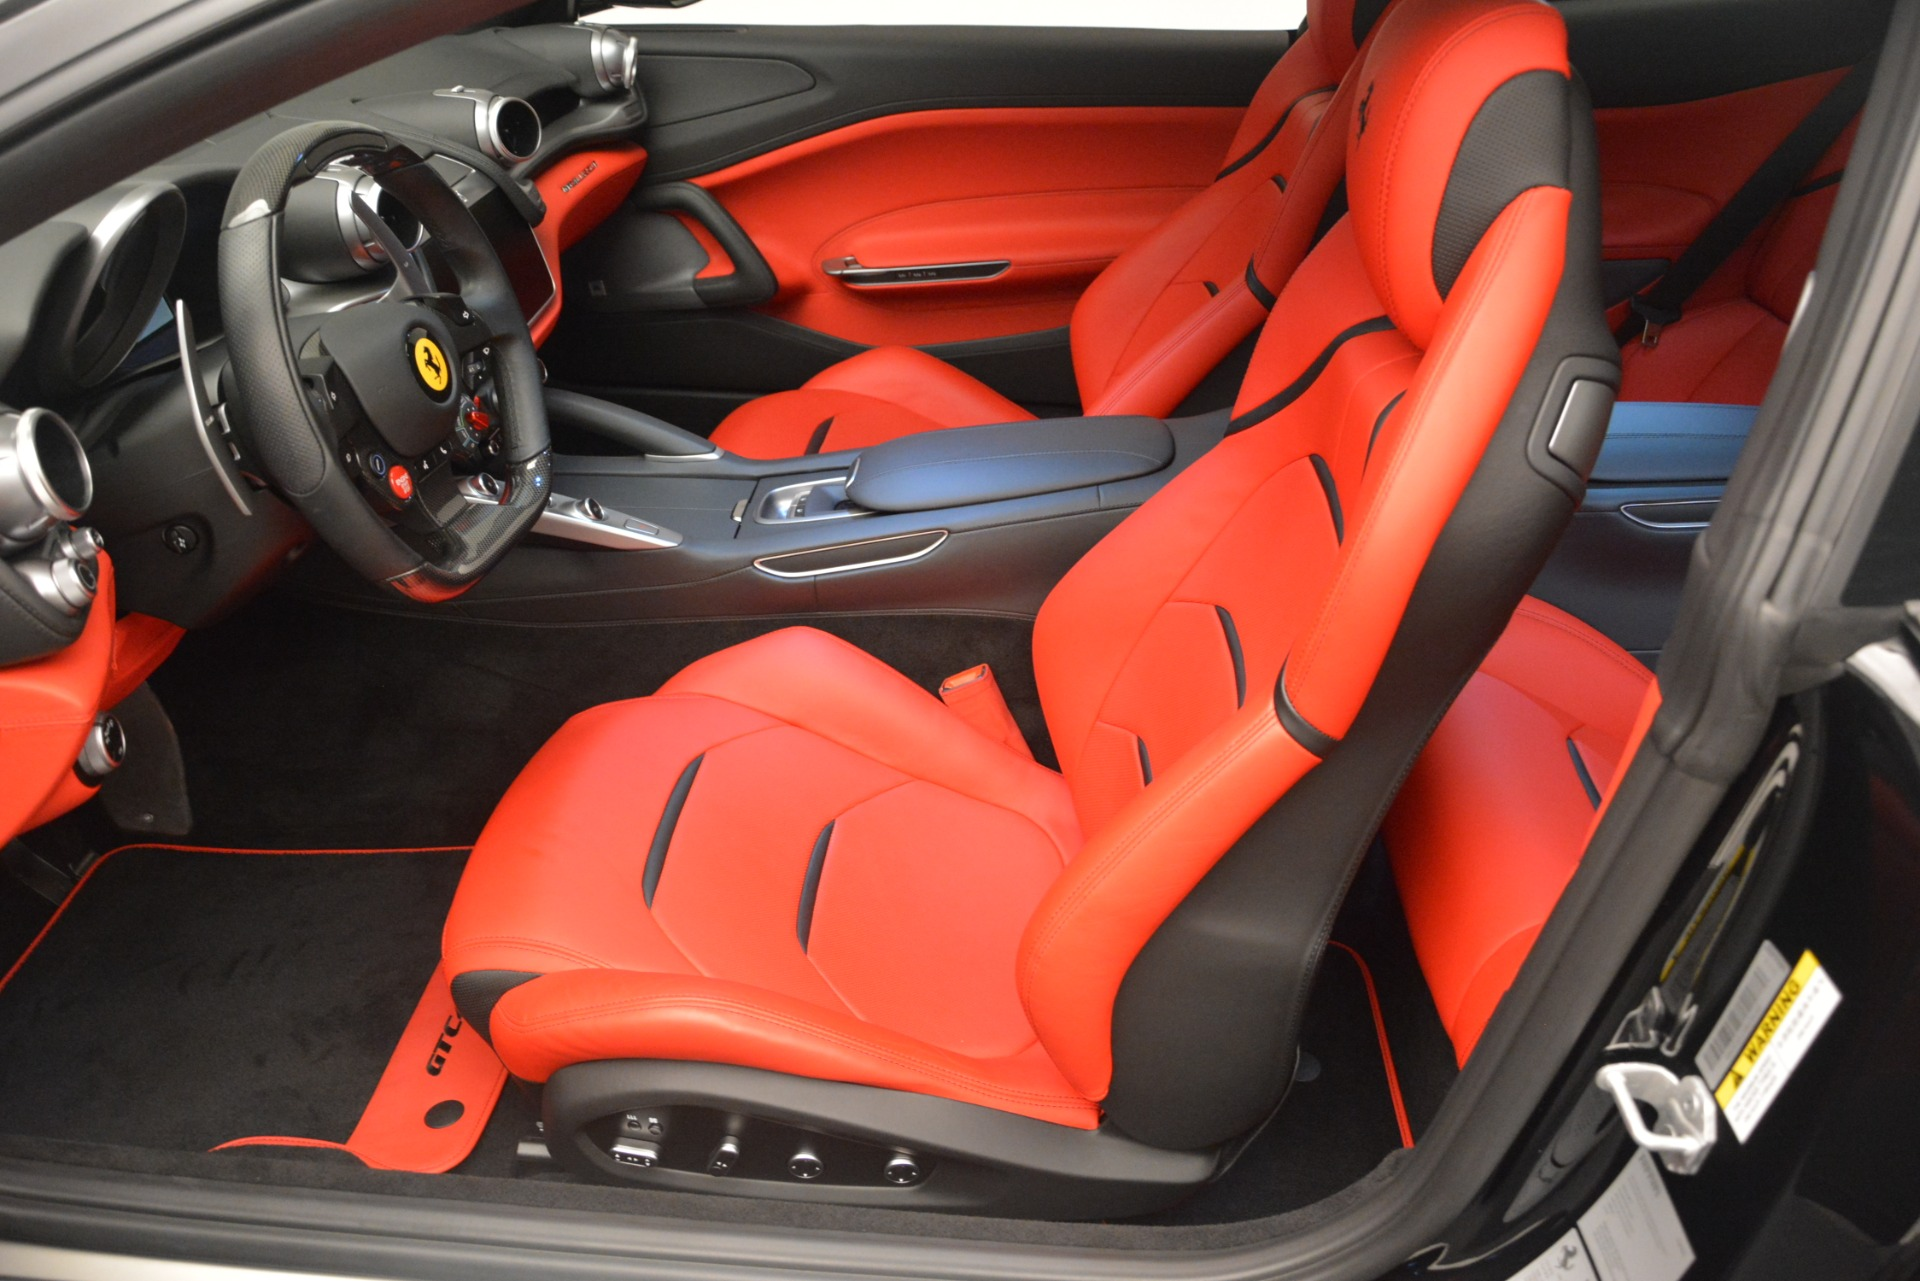 Used 2018 Ferrari GTC4LussoT V8 For Sale In Westport, CT 2598_p15